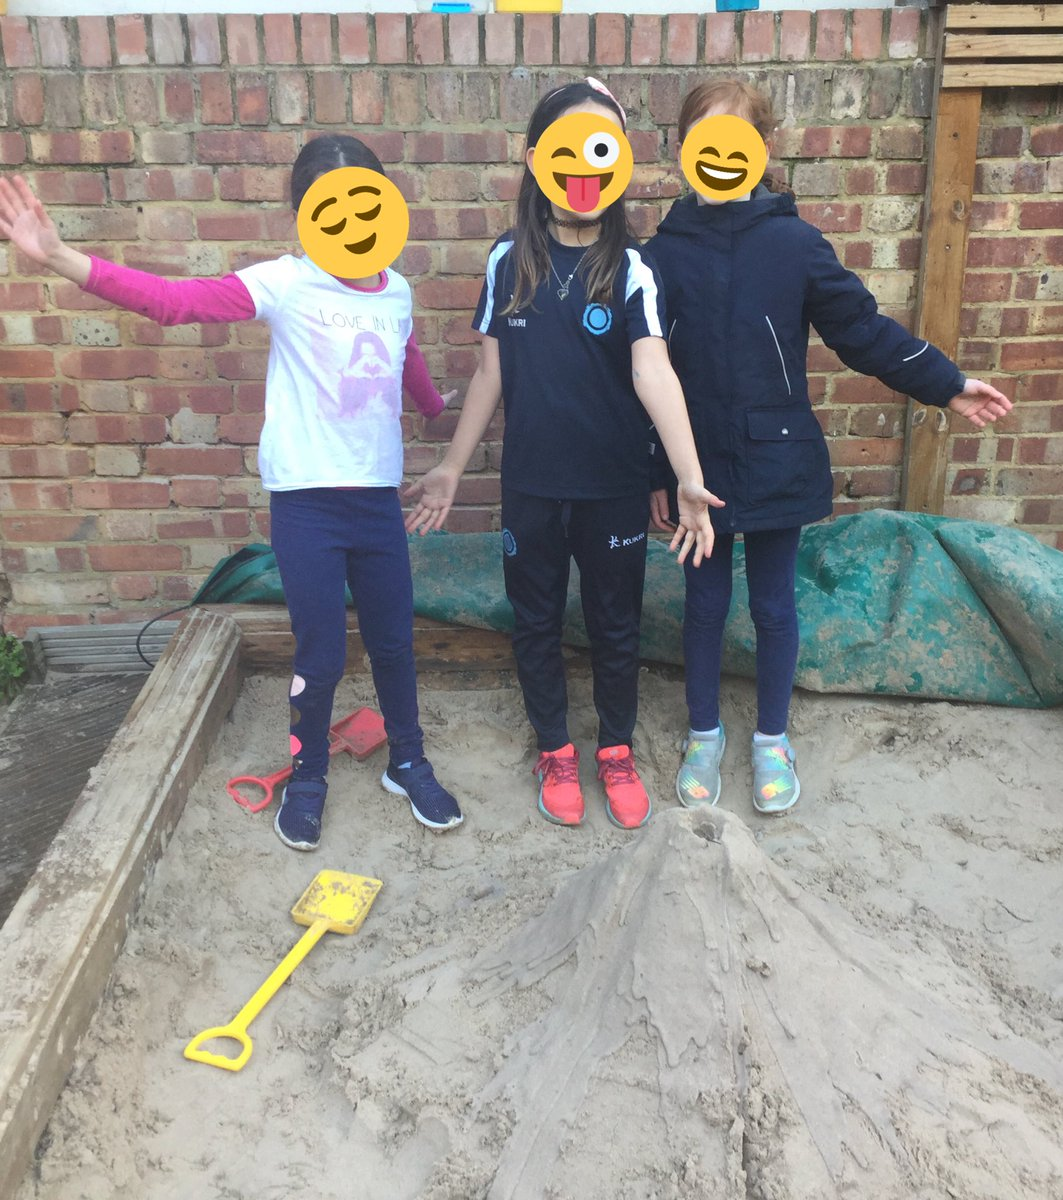 #ThisTweetIsCreatedByOurStudents Part III.  After learning about landforms, we knew we had to make the biggest volcano during playtime. I couldn't do it without them, look its got magma inside and the lava coming out!  By BF age 9 #ScienceOutsideMakesMyHandsCold @CognitaSchools